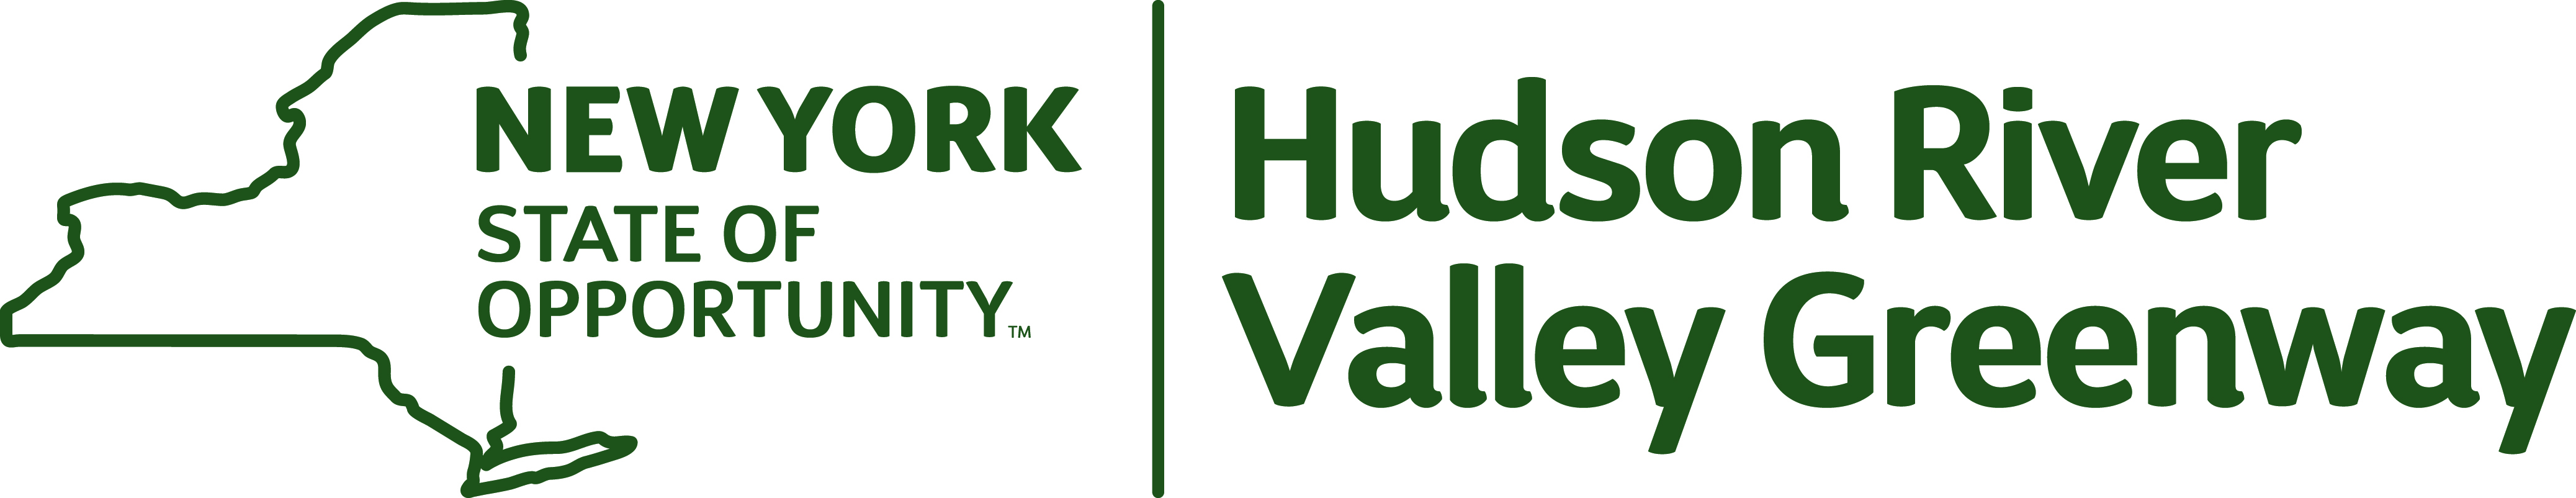 New York State of Opportunity | Hudson River Valley Greenway Logo